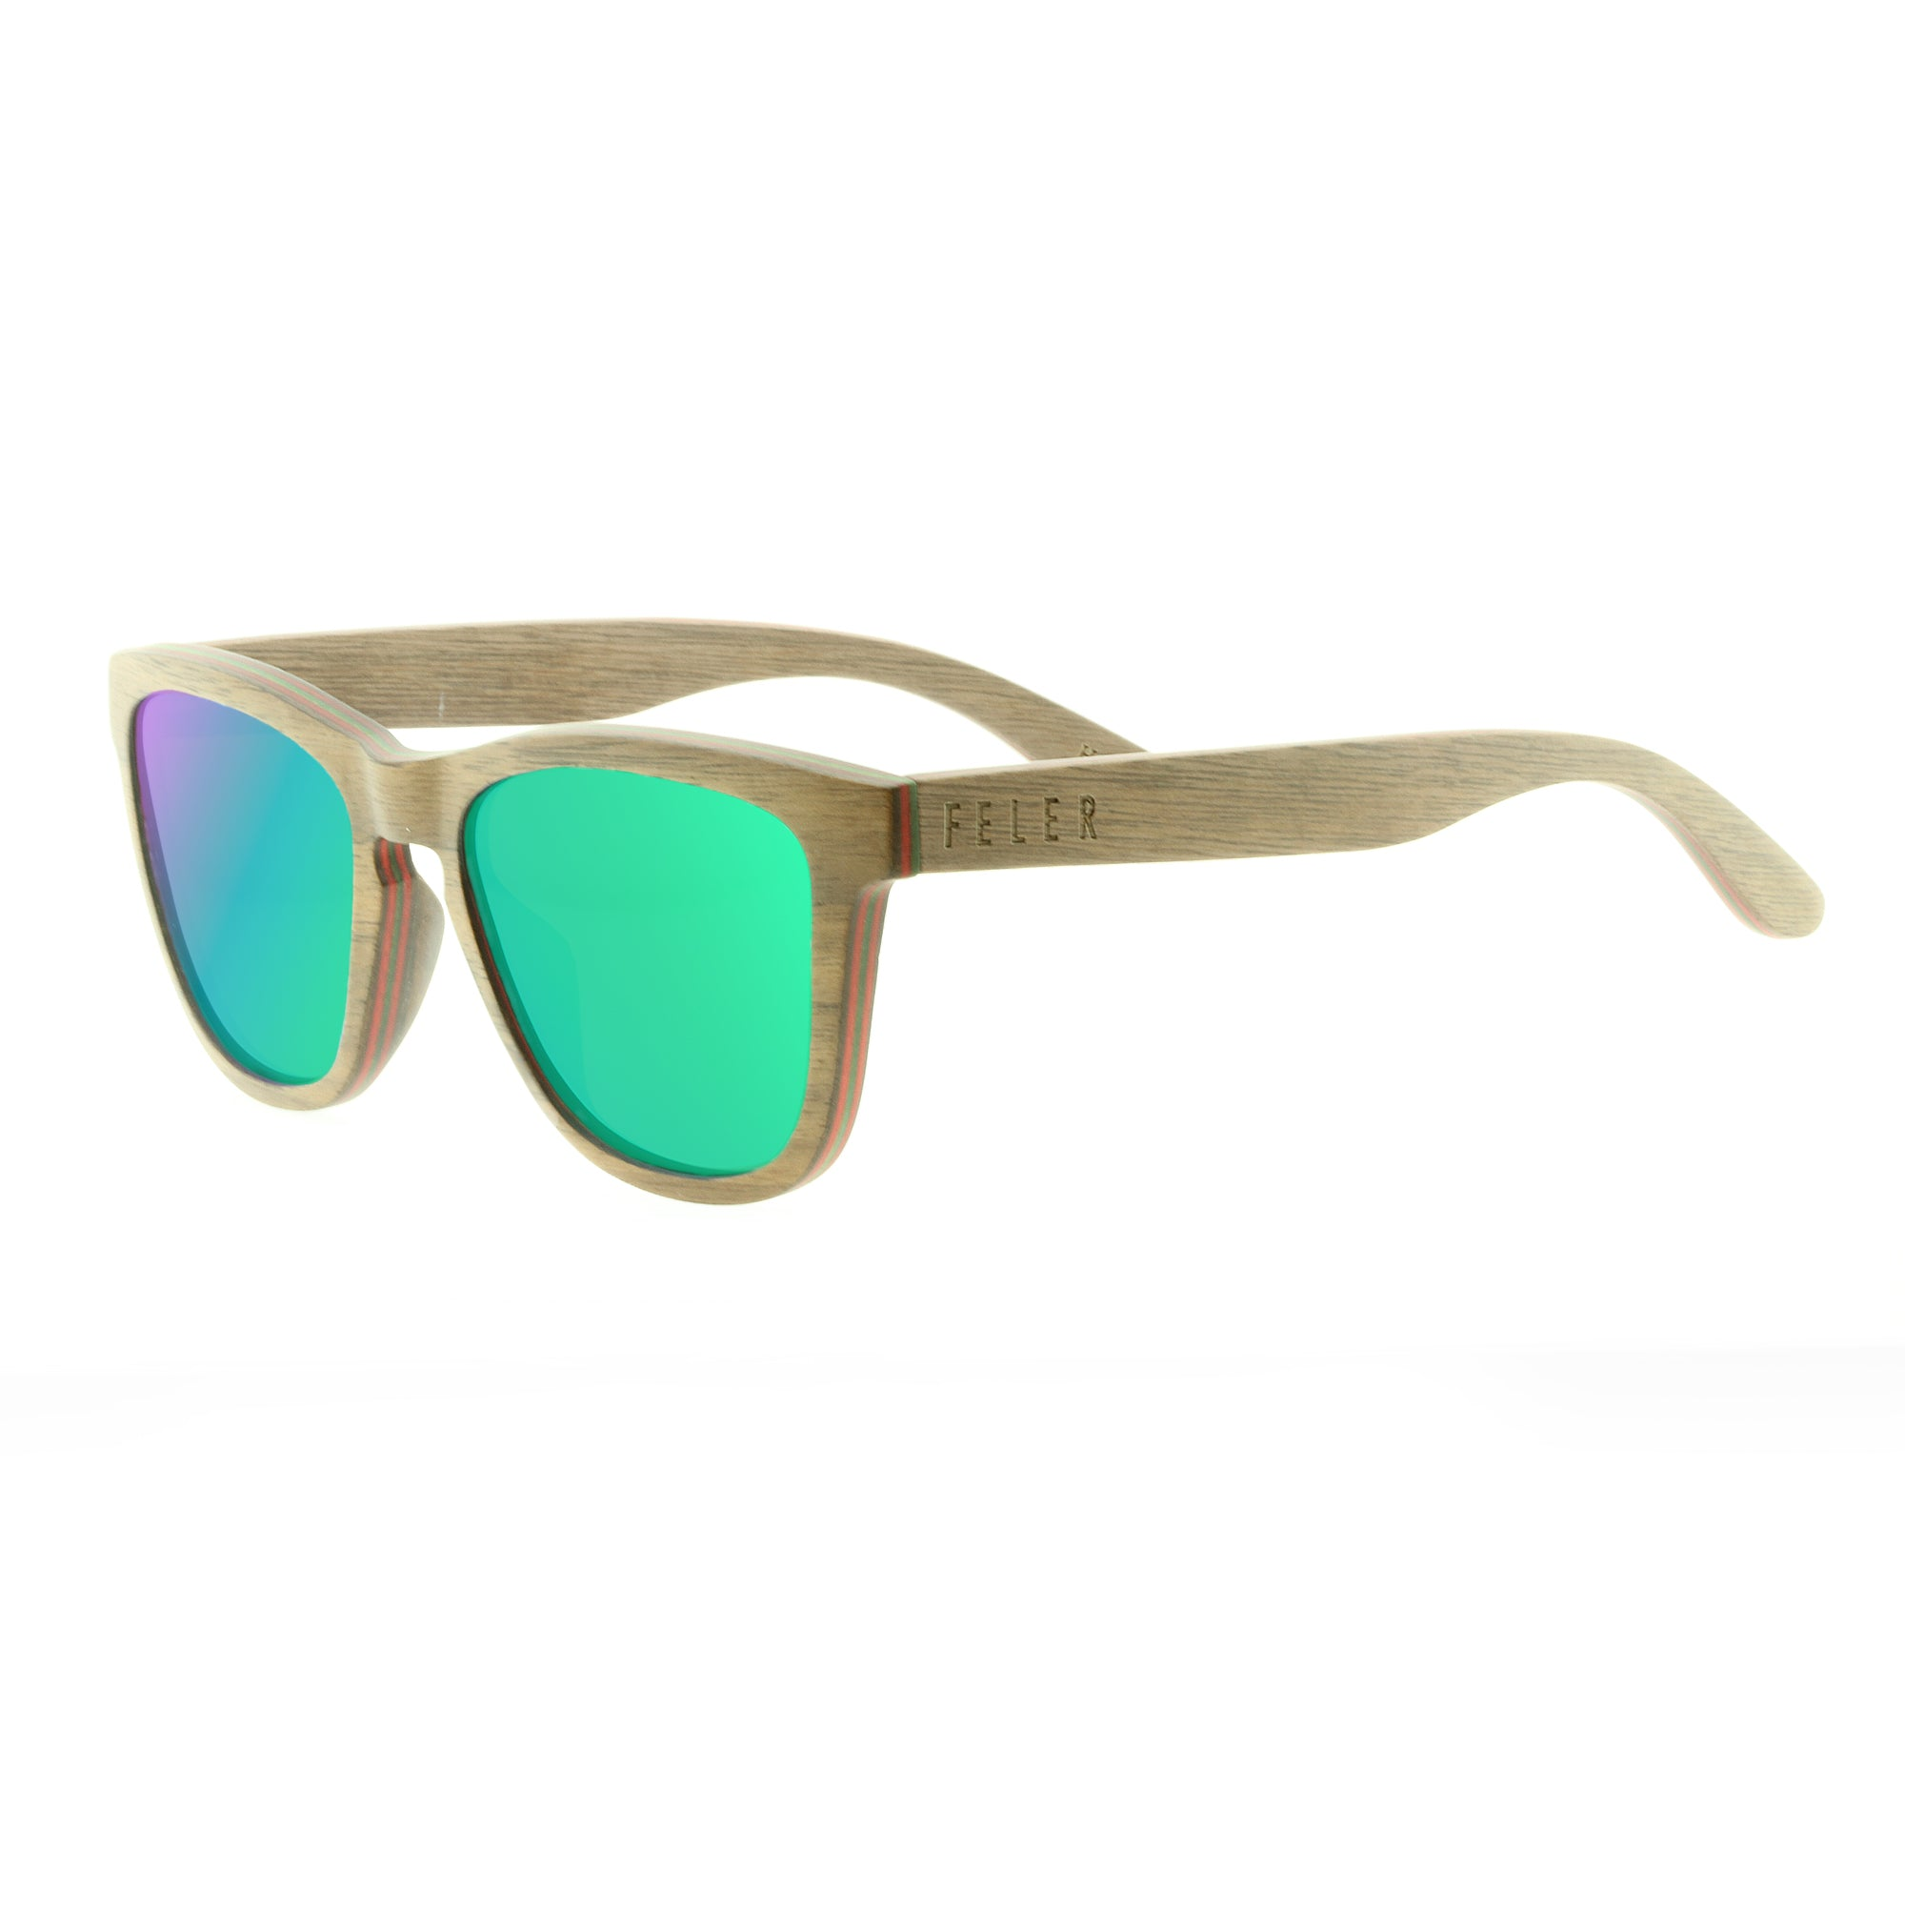 5b084cbab9 Regular Wood Green - Gafas de sol - Feler Sunglasses